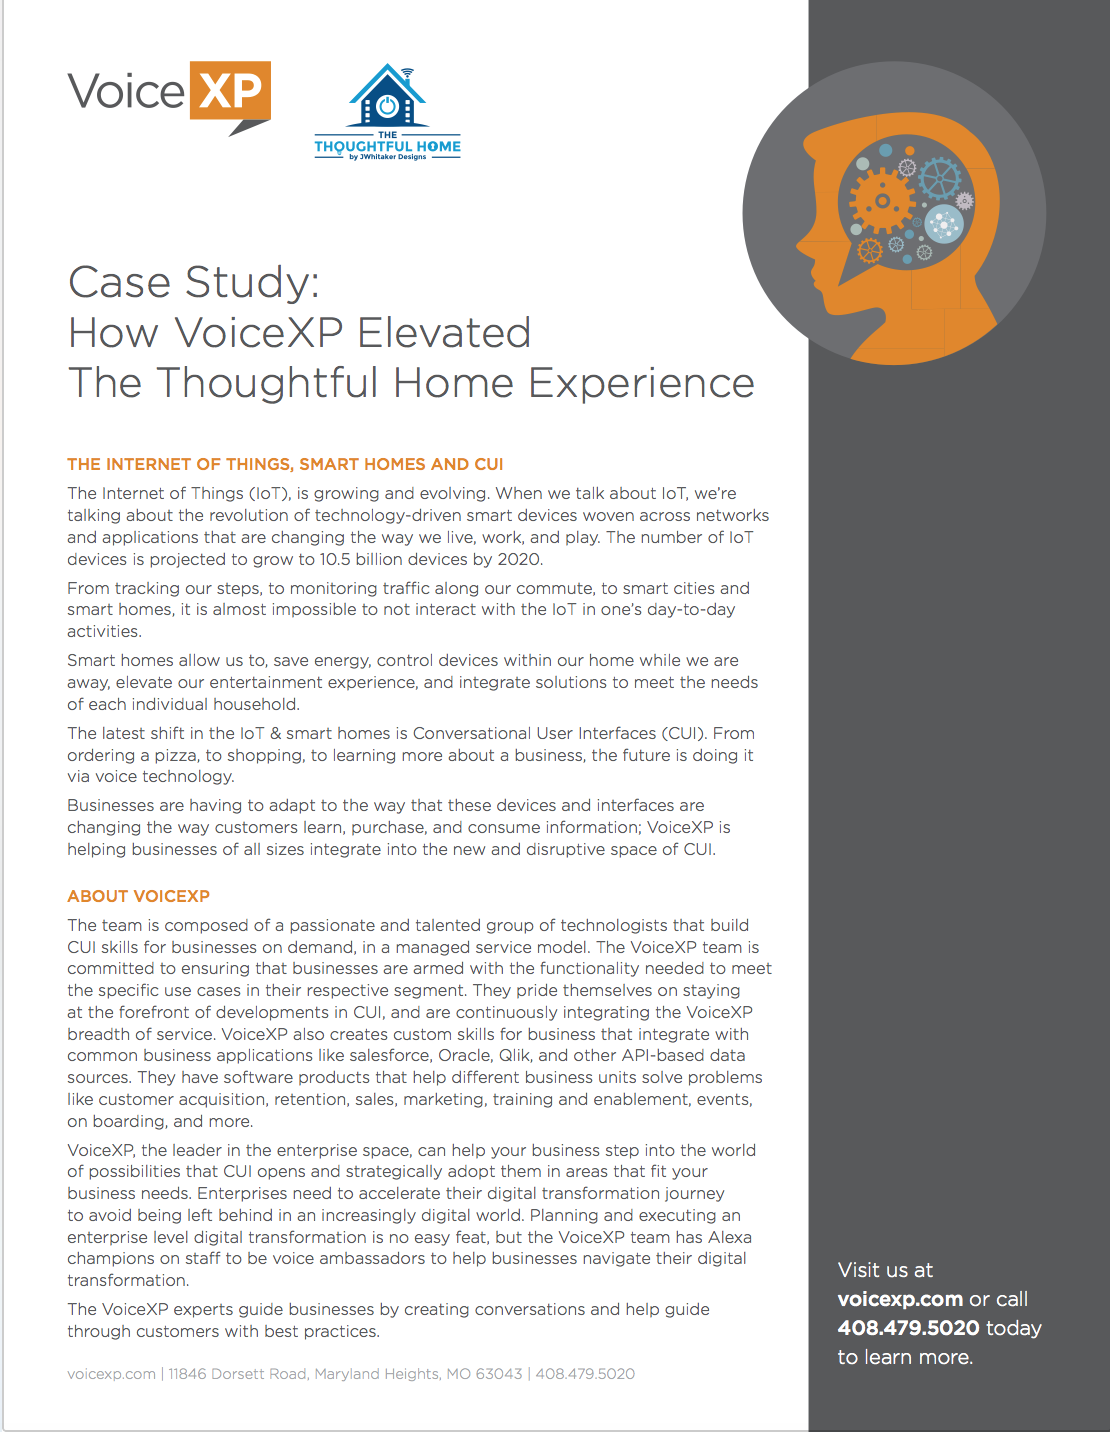 Thoughtful Home Case Study